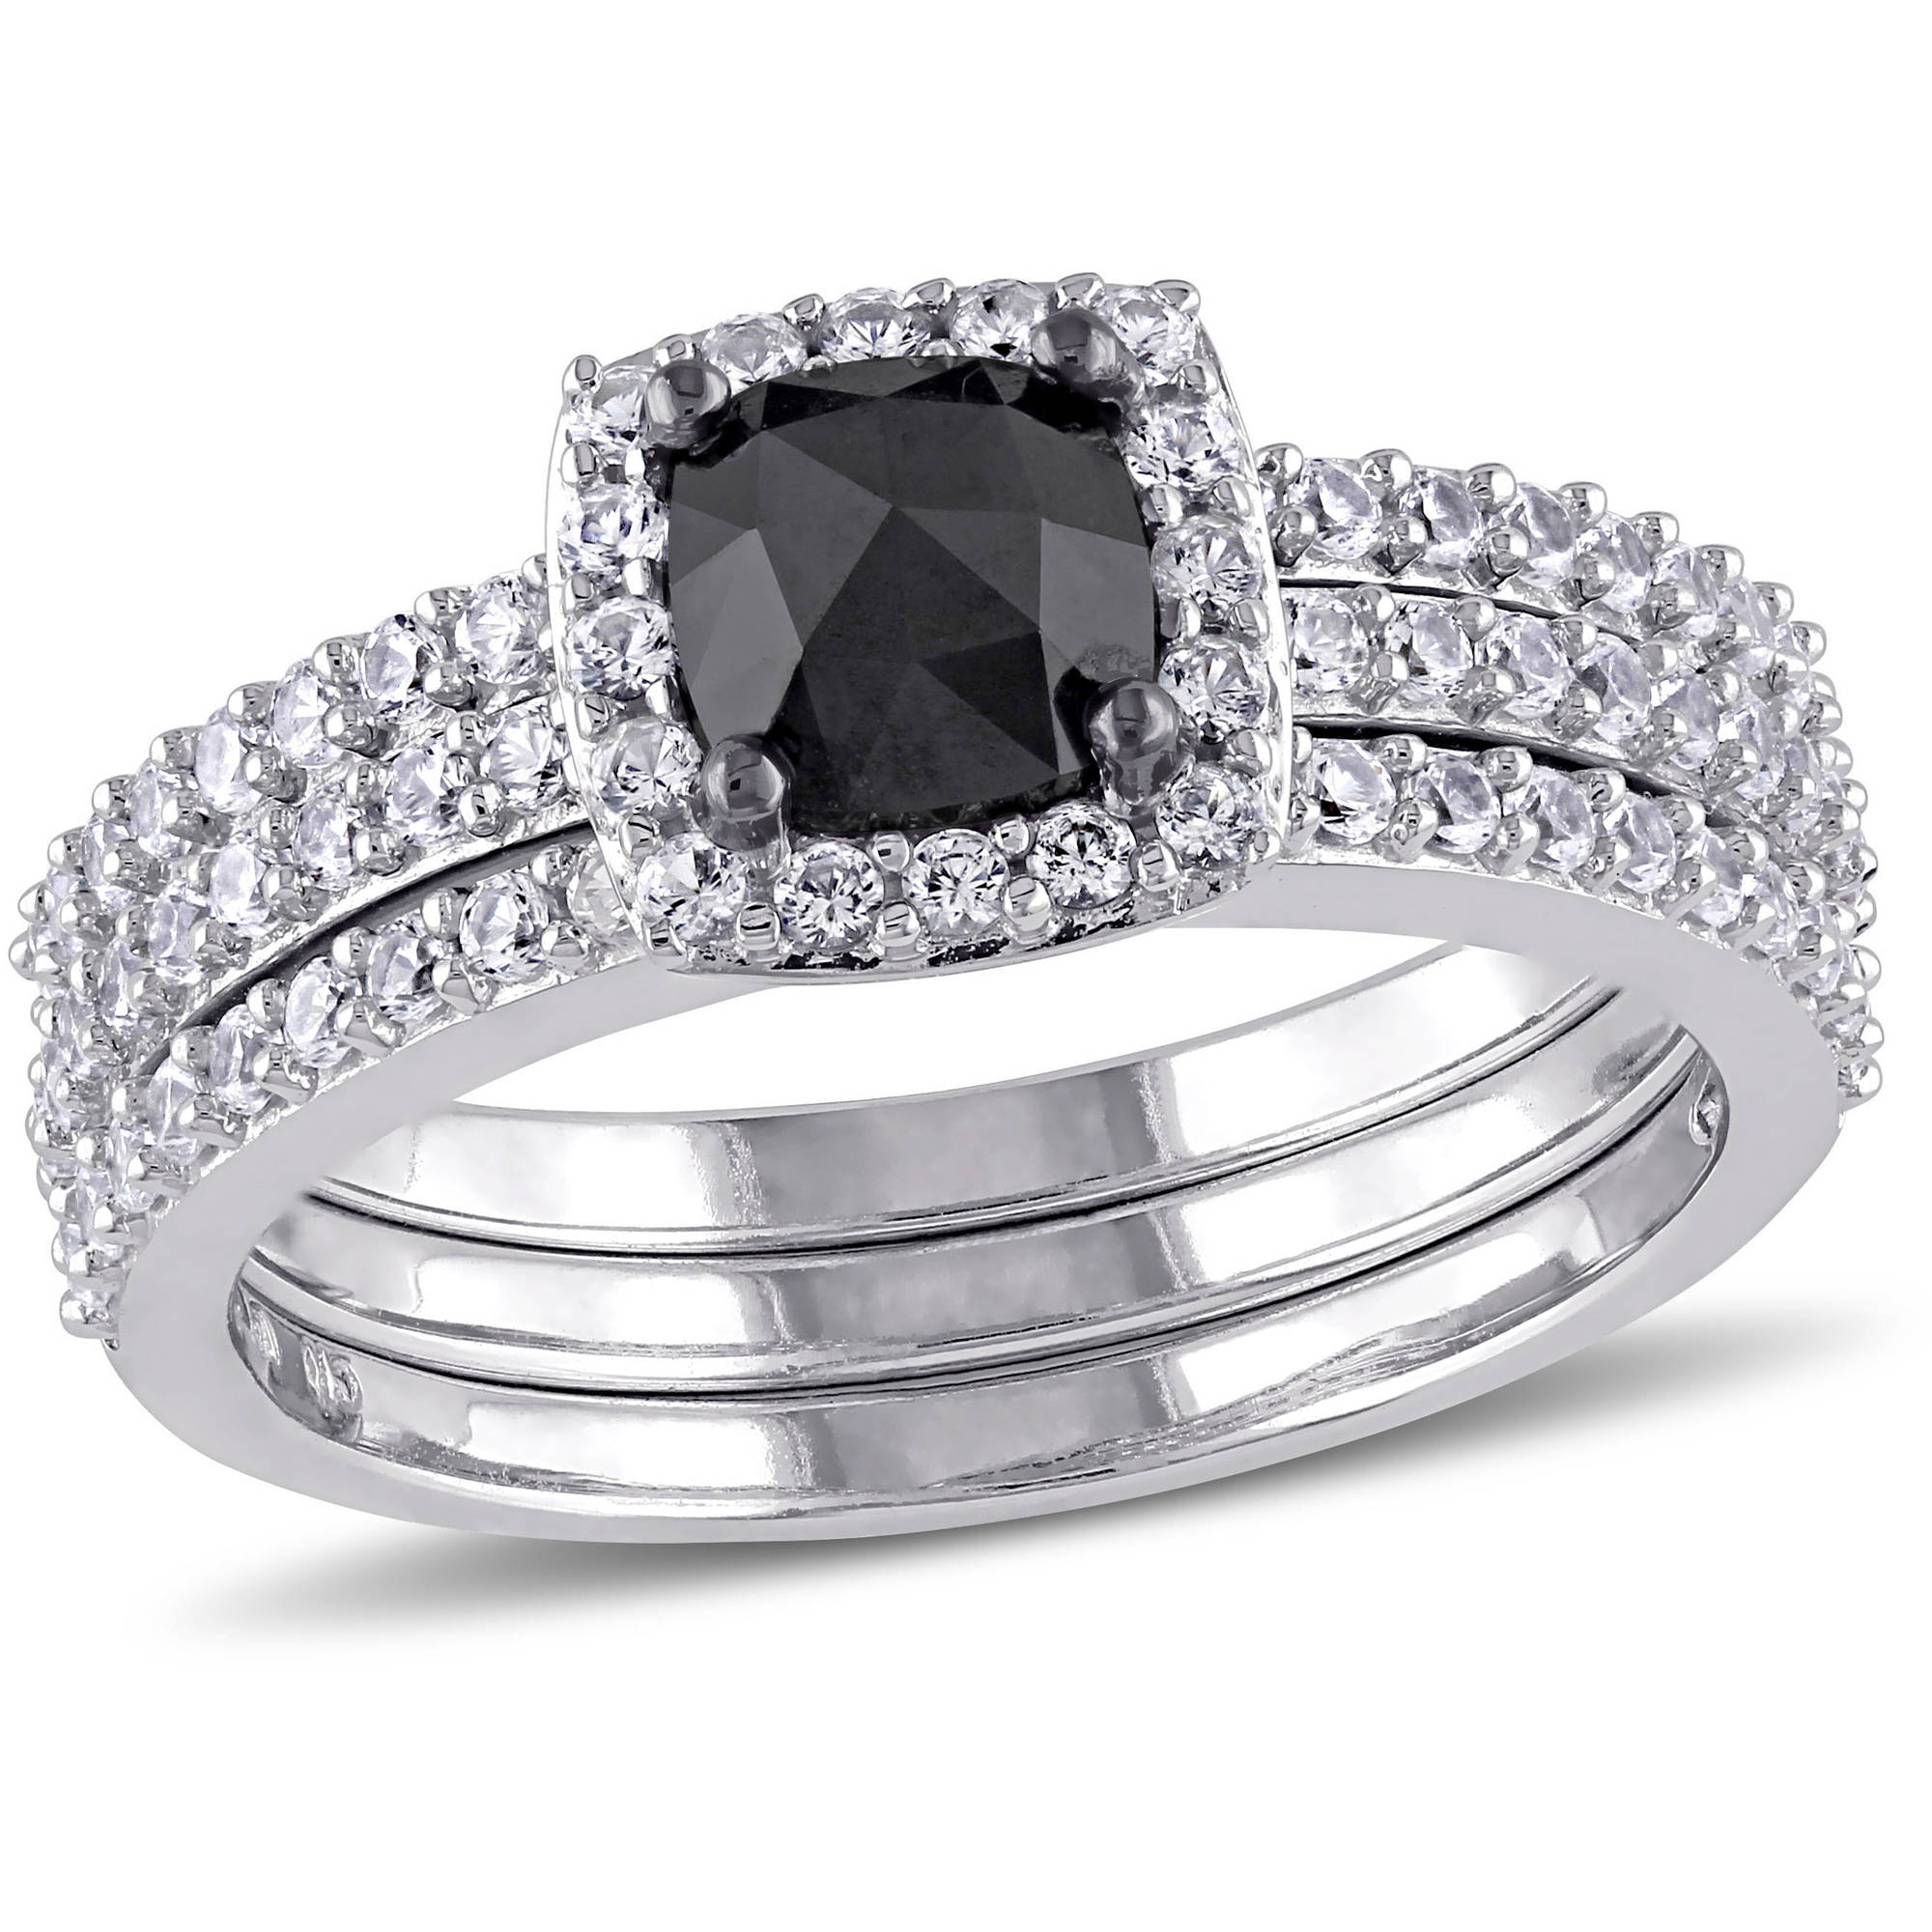 4 5 Carat T.G.W. Created White Sapphire and 3 4 Carat T.W. Black Diamond 10kt White Gold Halo Bridal Set by Generic